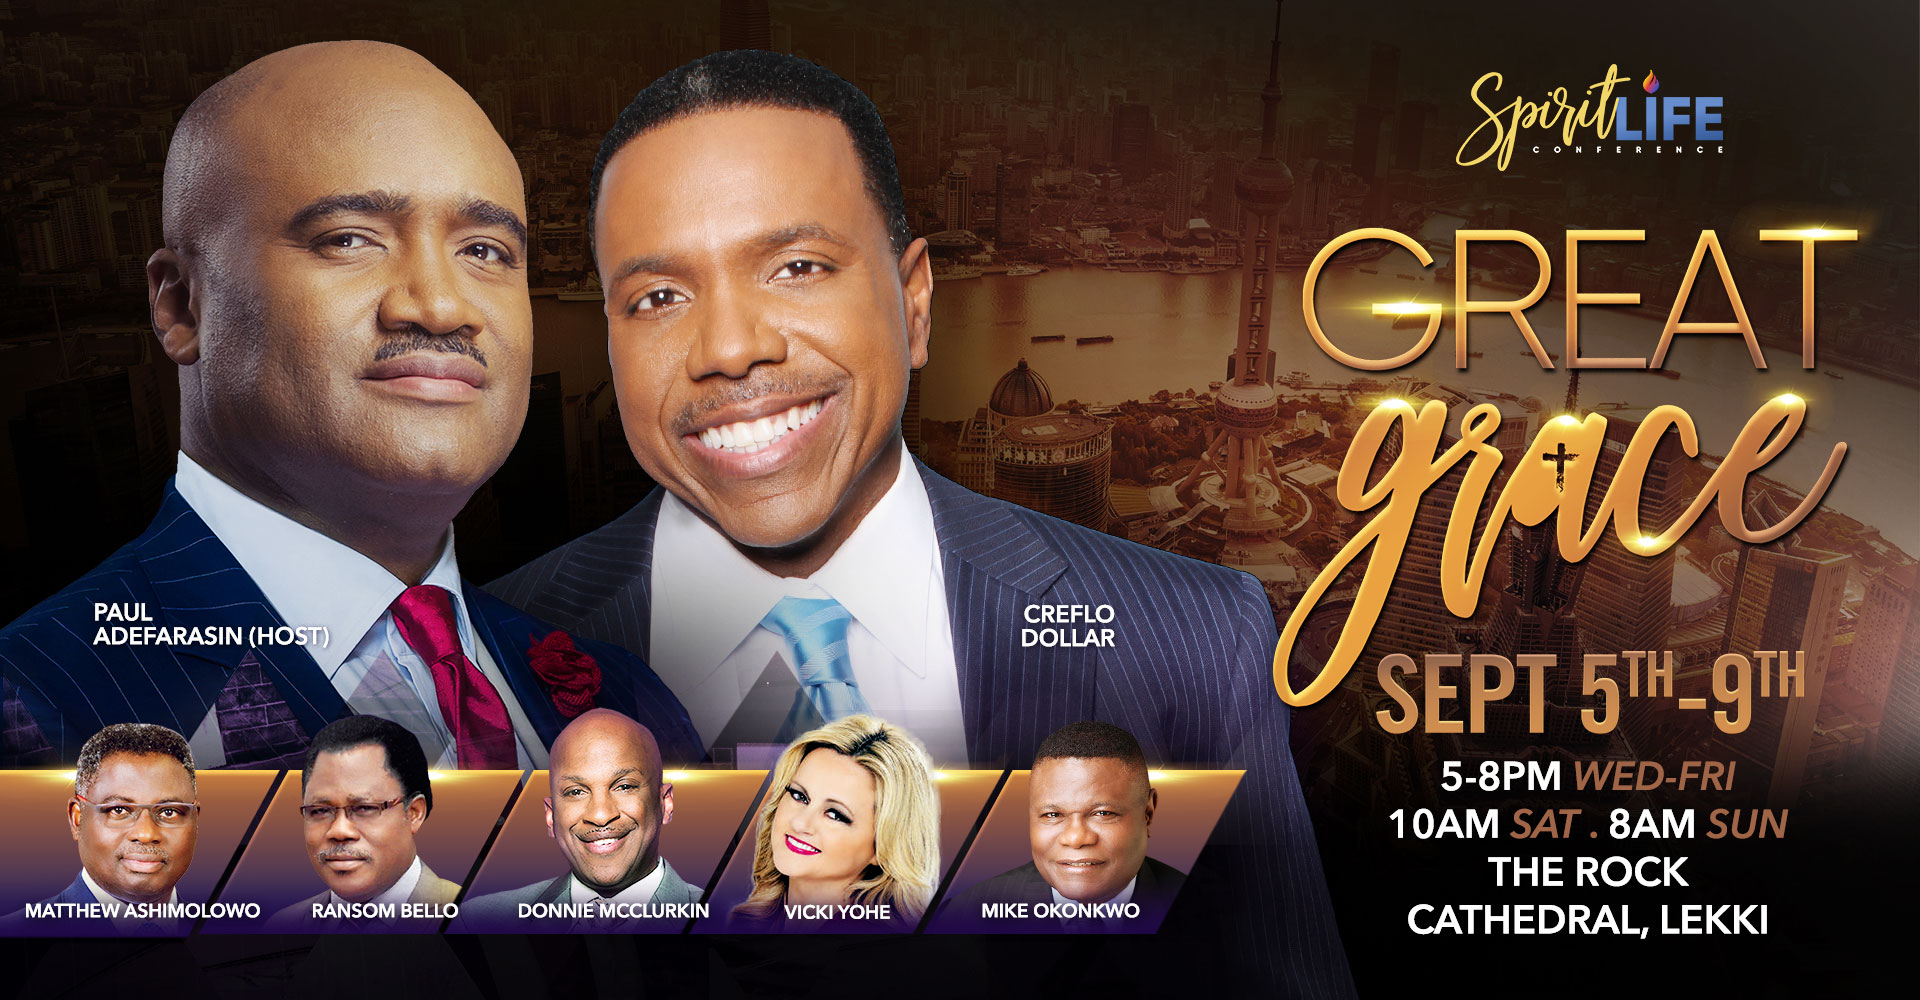 Get ready for The Spirit Life Conference with Paul Adefarasin